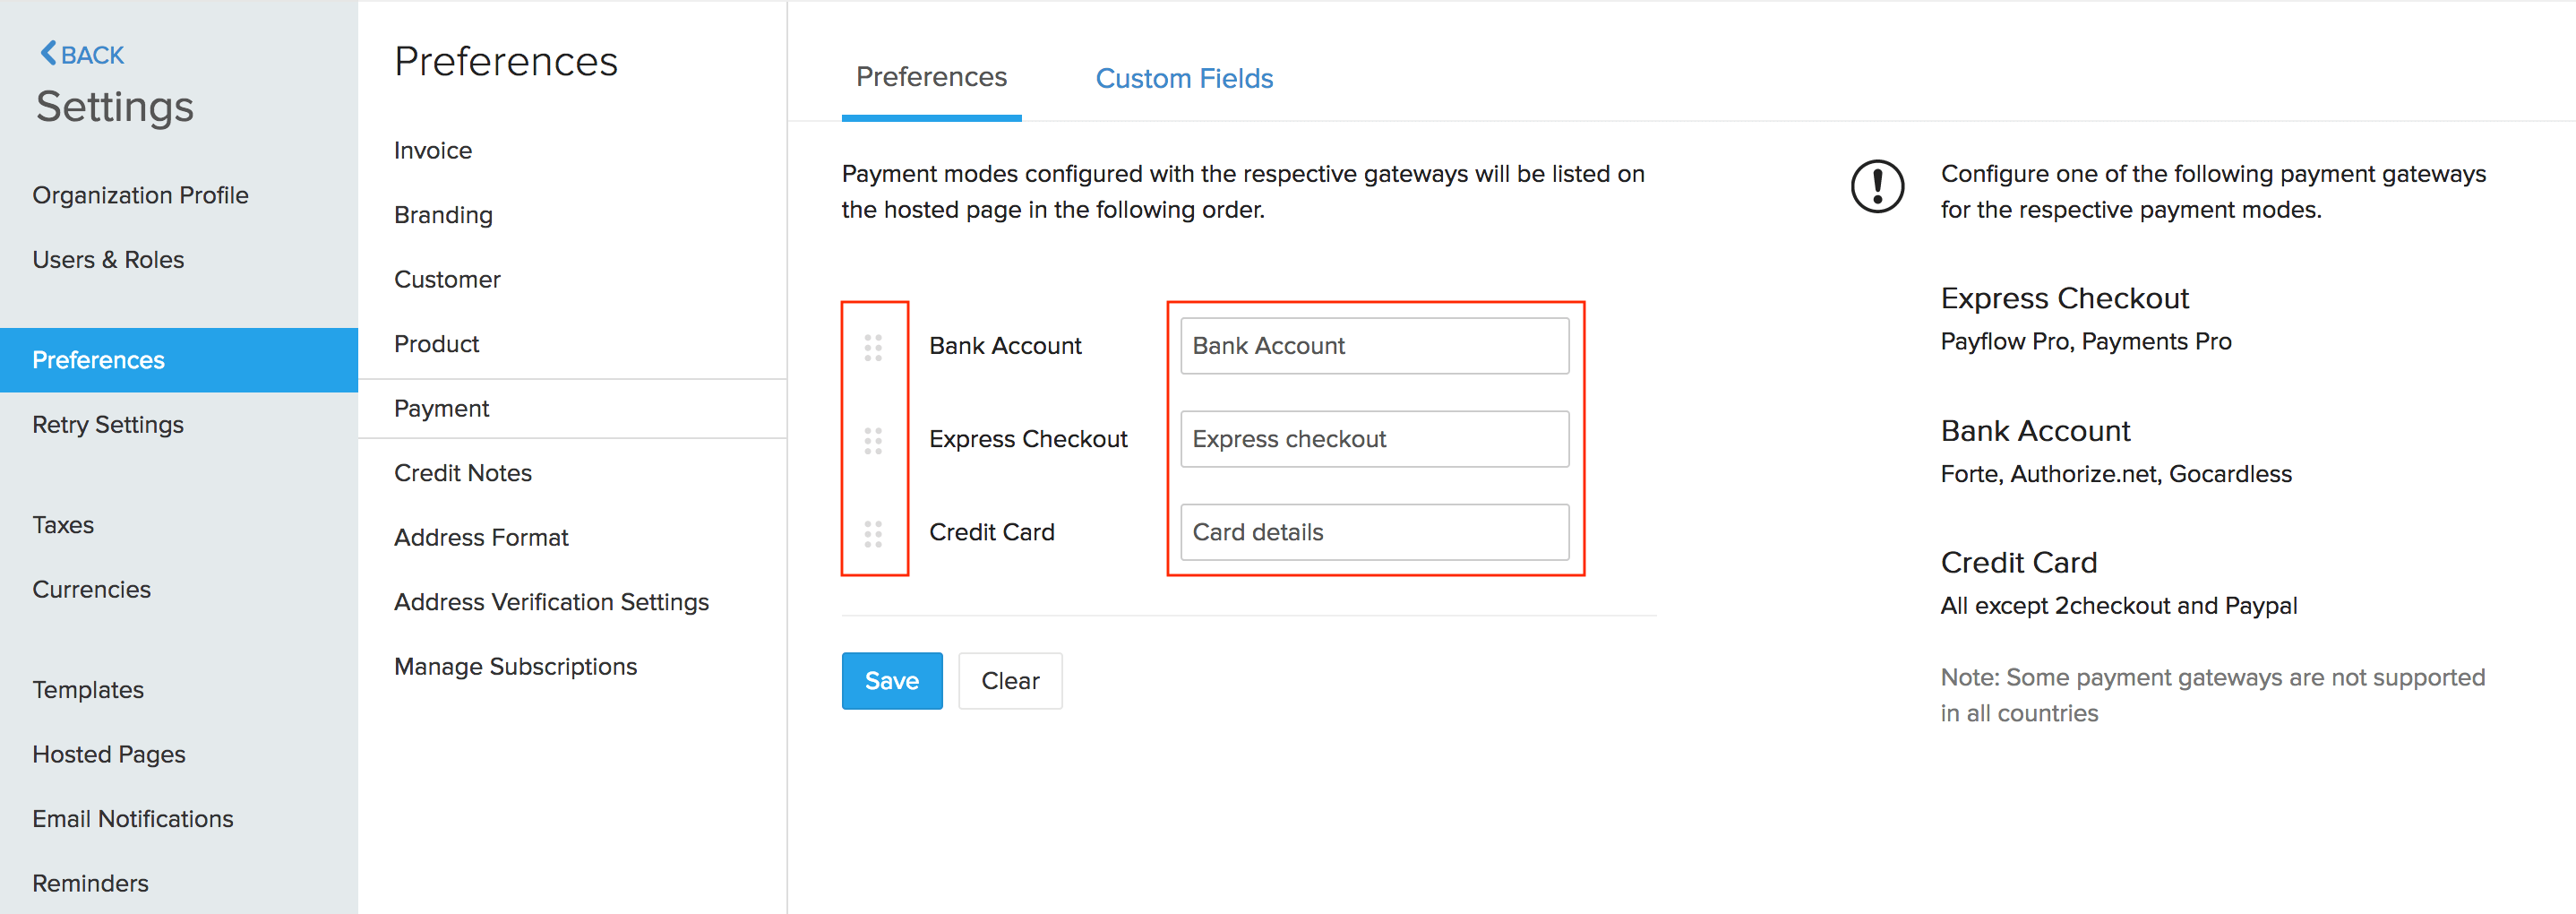 Payment Mode Preferences